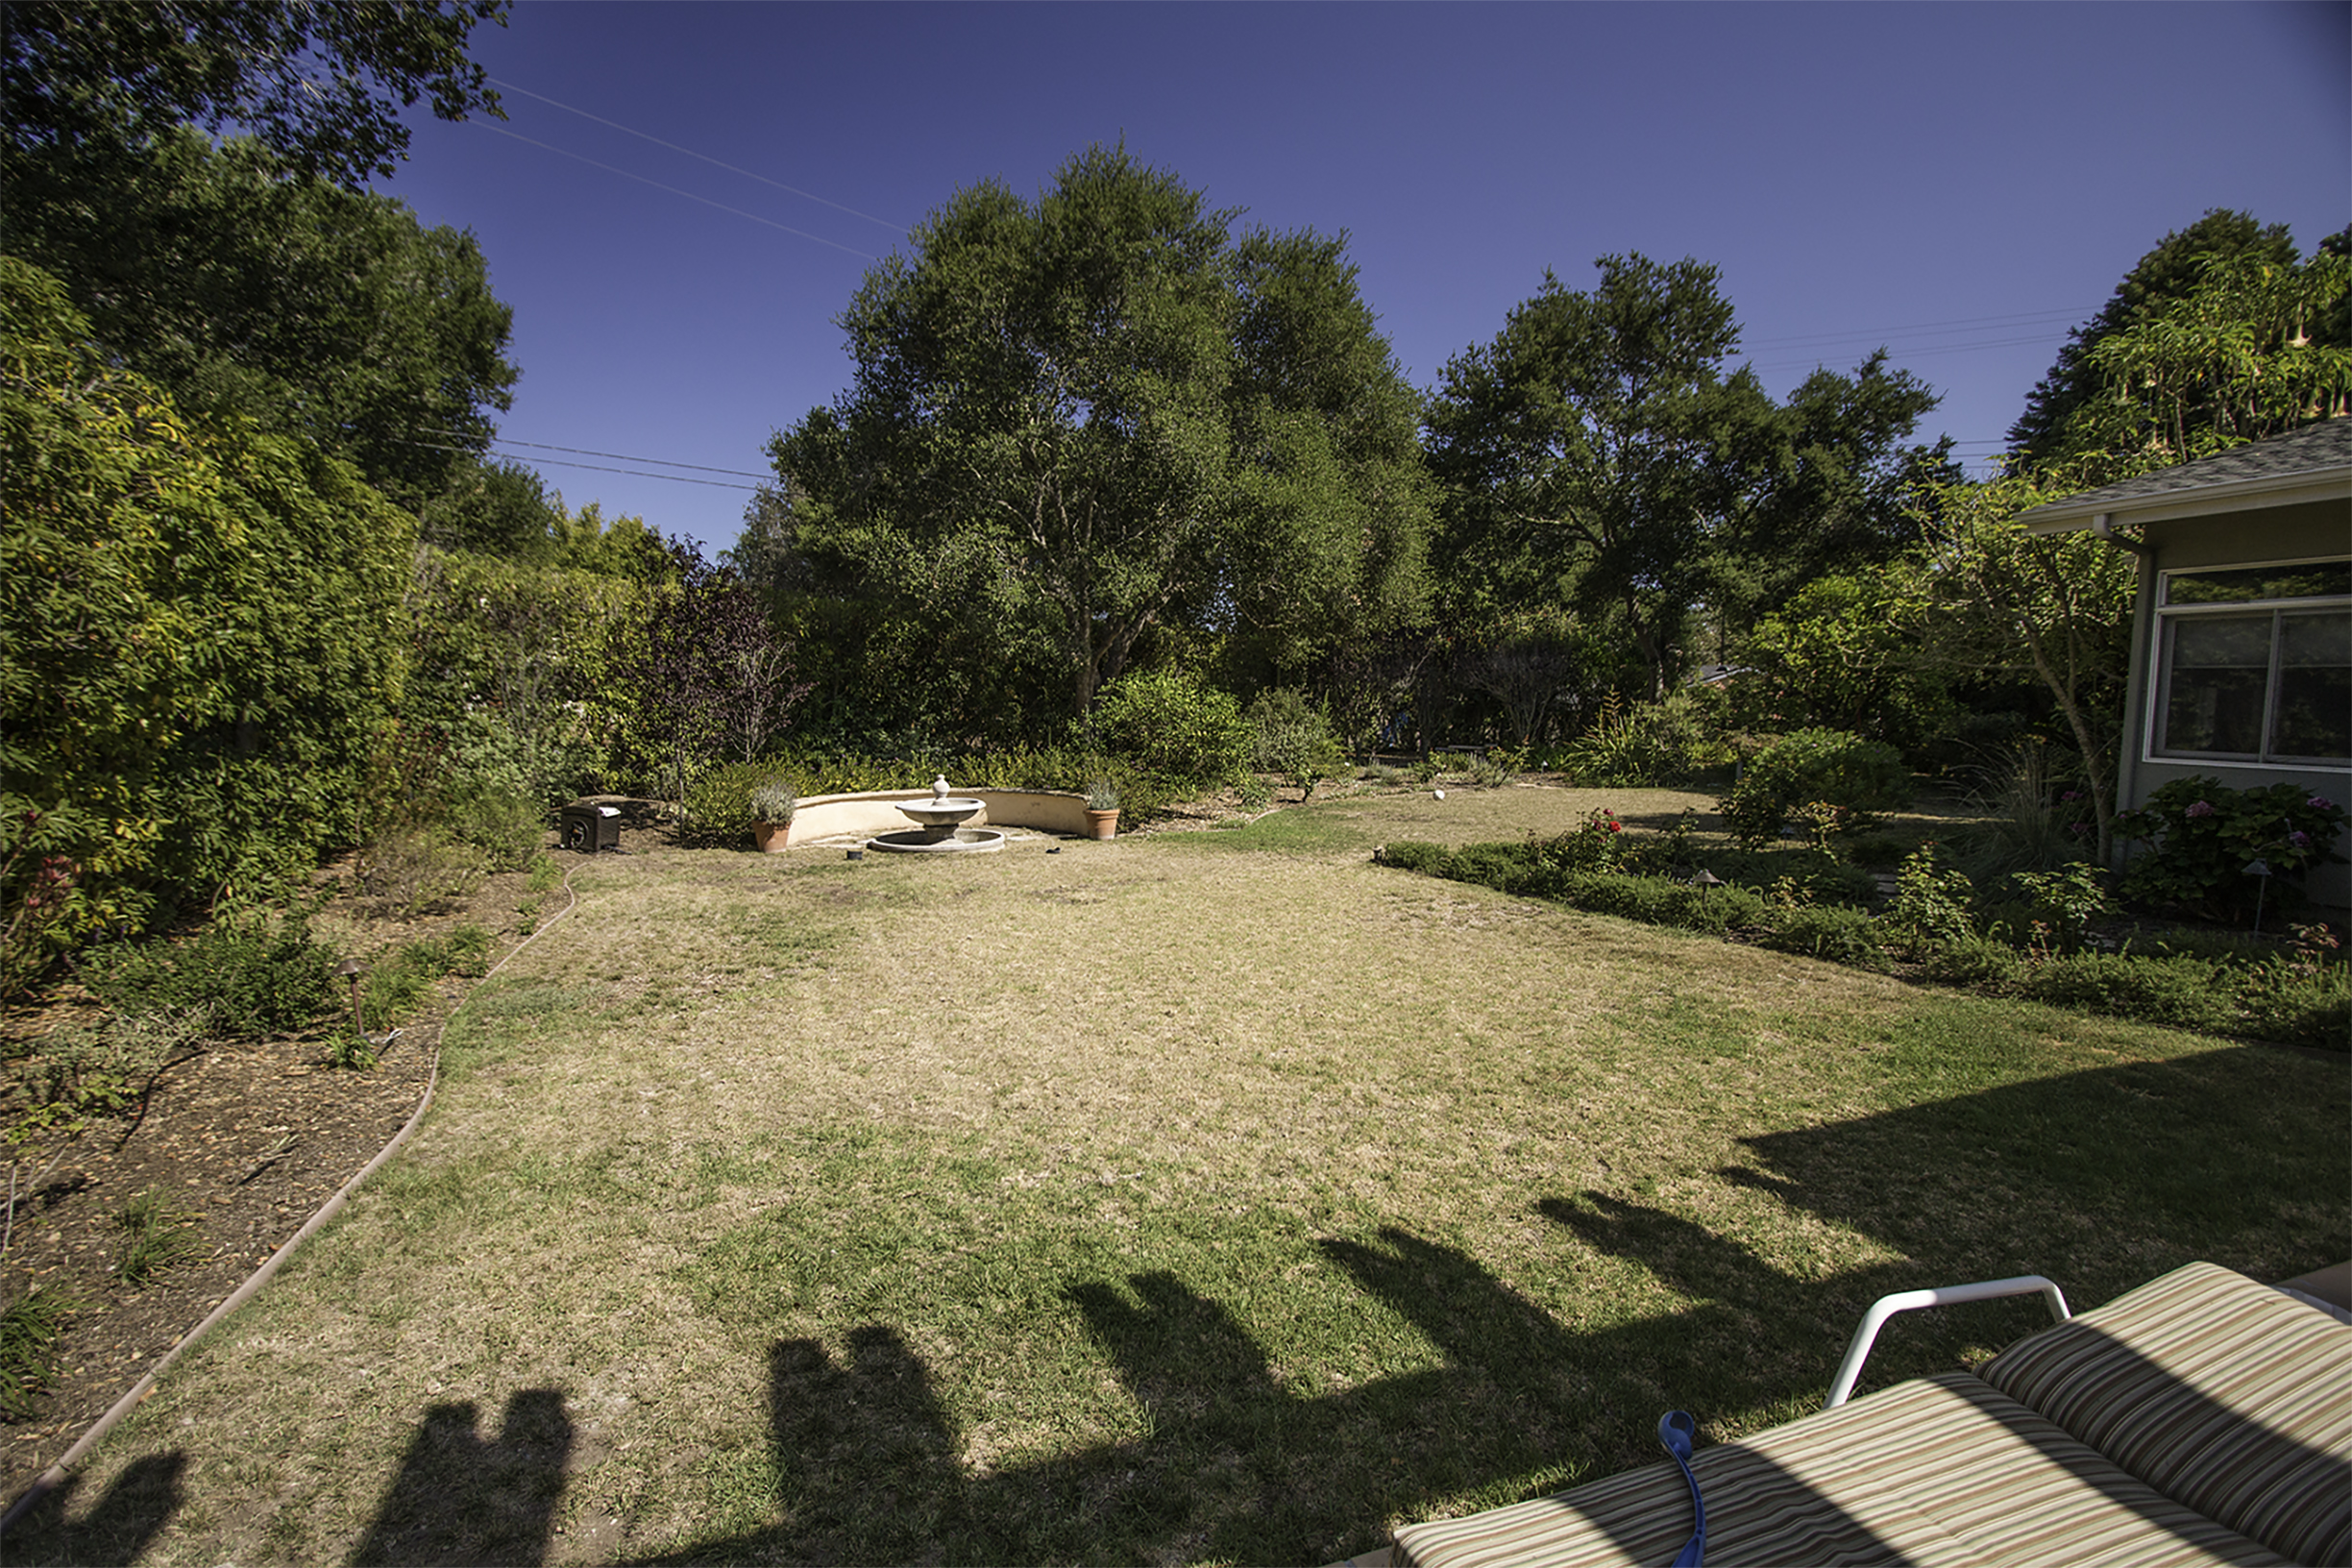 Before design: San Roque lawn as camera saw it.